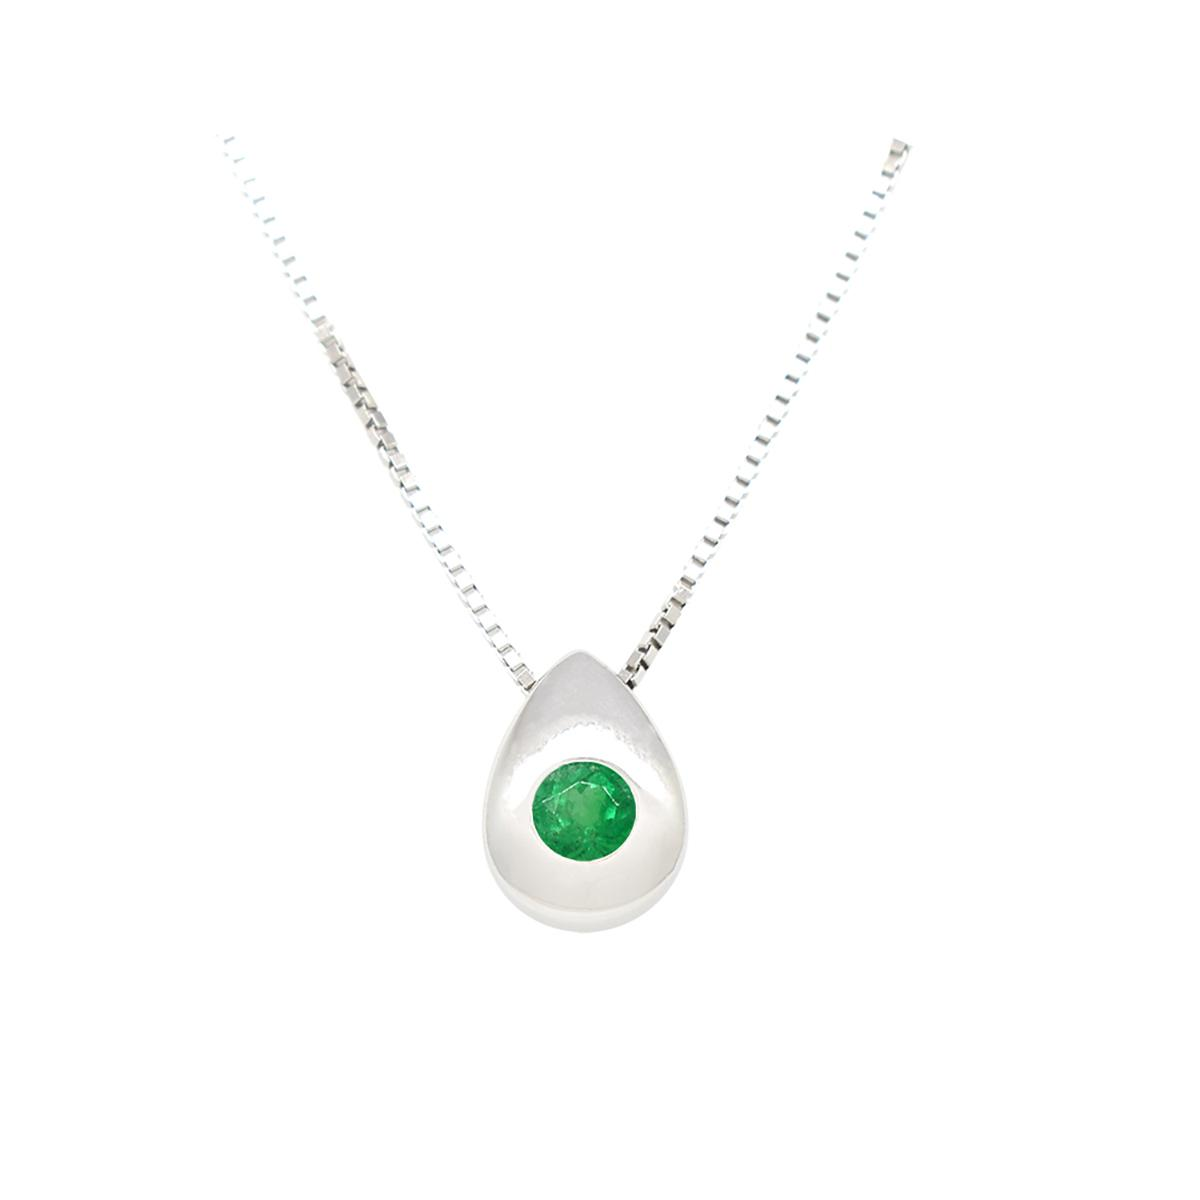 emerald-necklace-in-18k-white-gold-with-genuine-round-cut-emerald